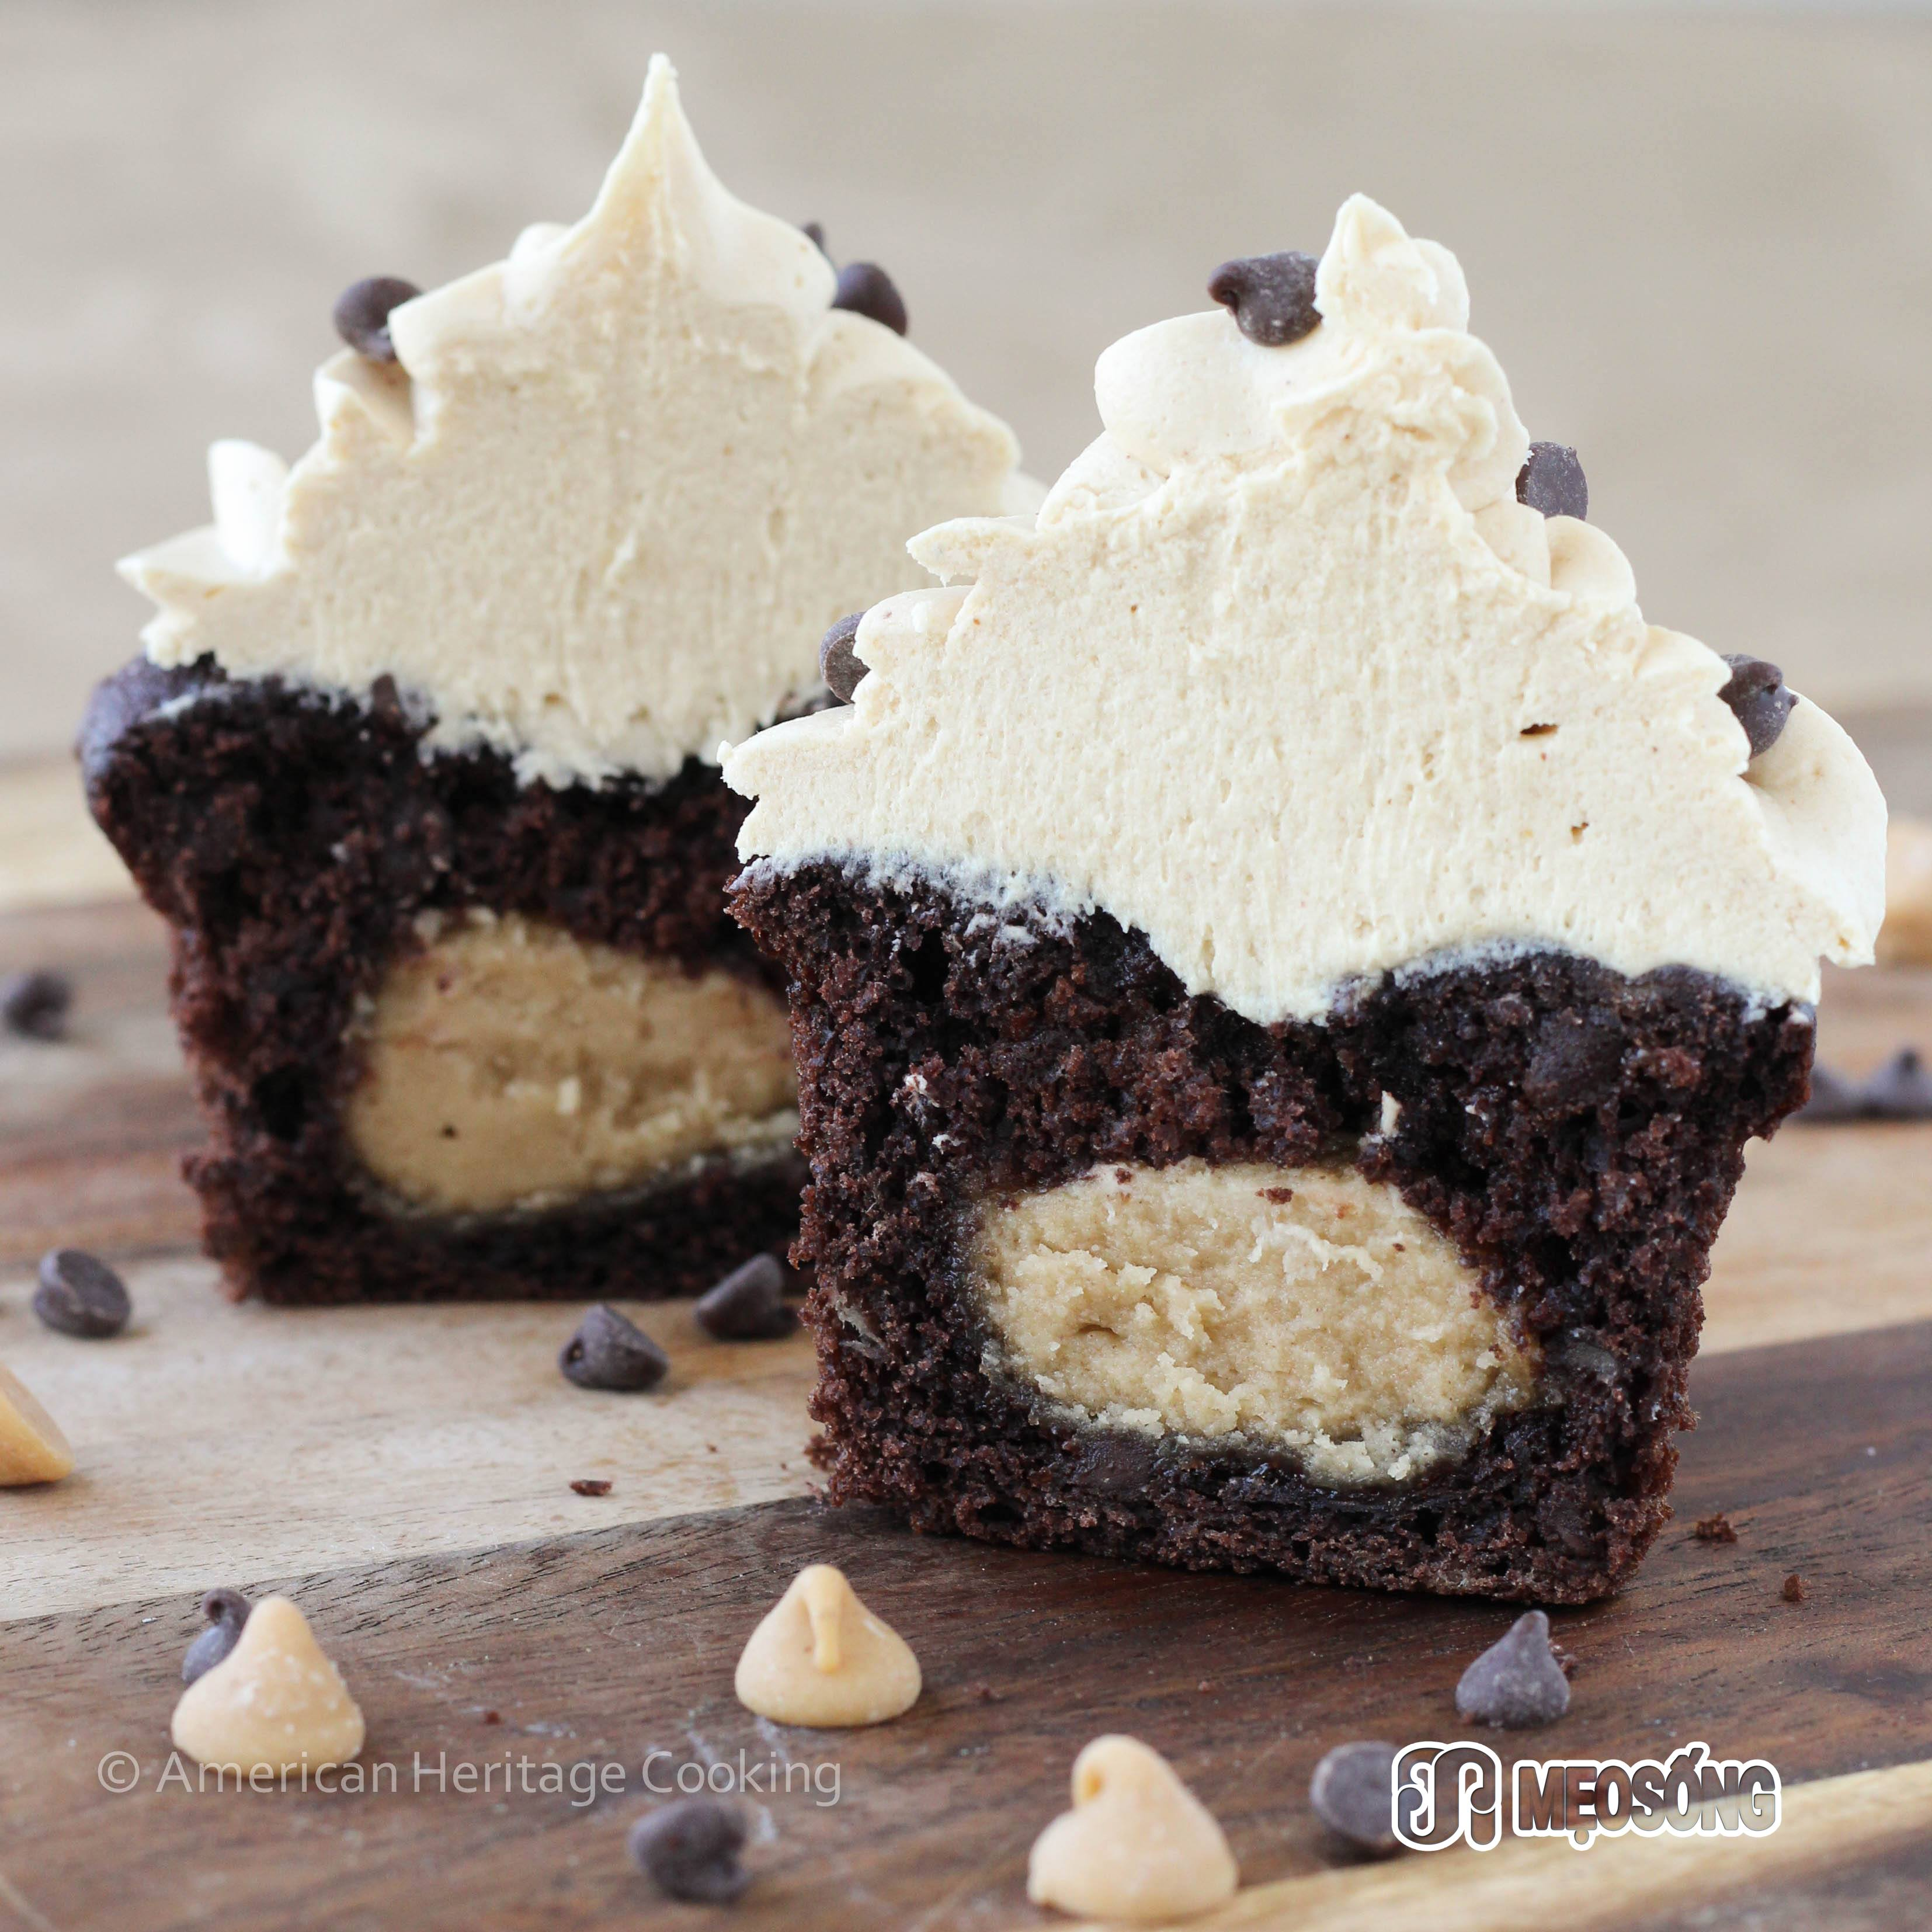 Peanut_Butter_Stuffed_Double_Chocolate_-Cupcakes_Peanut_Butter_Frosting-1404204031